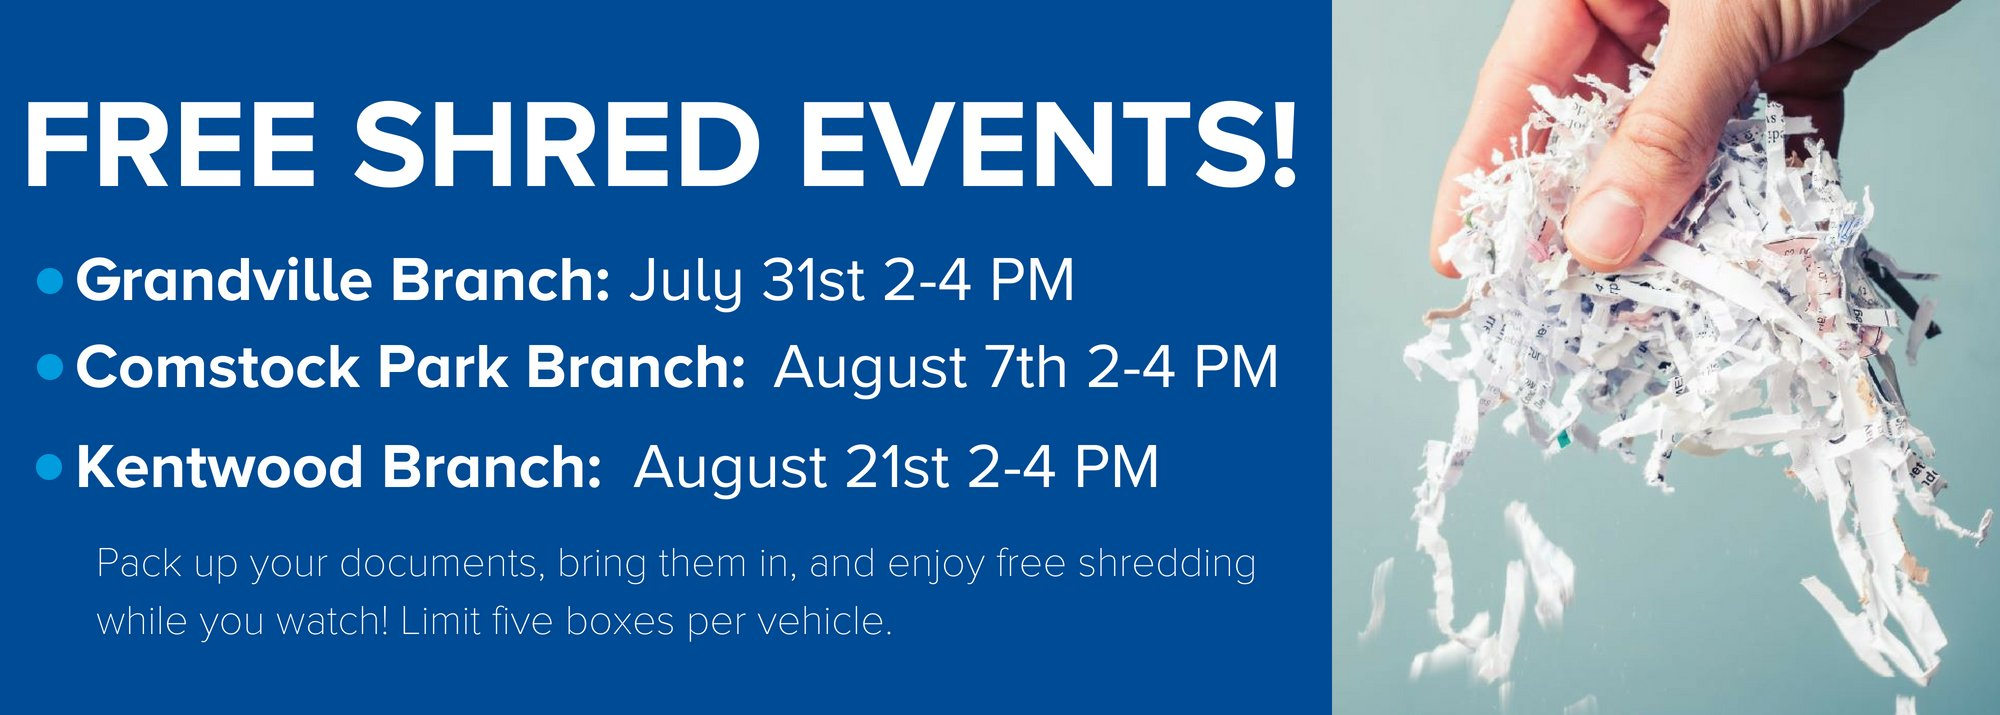 Shred-Event-3 Home